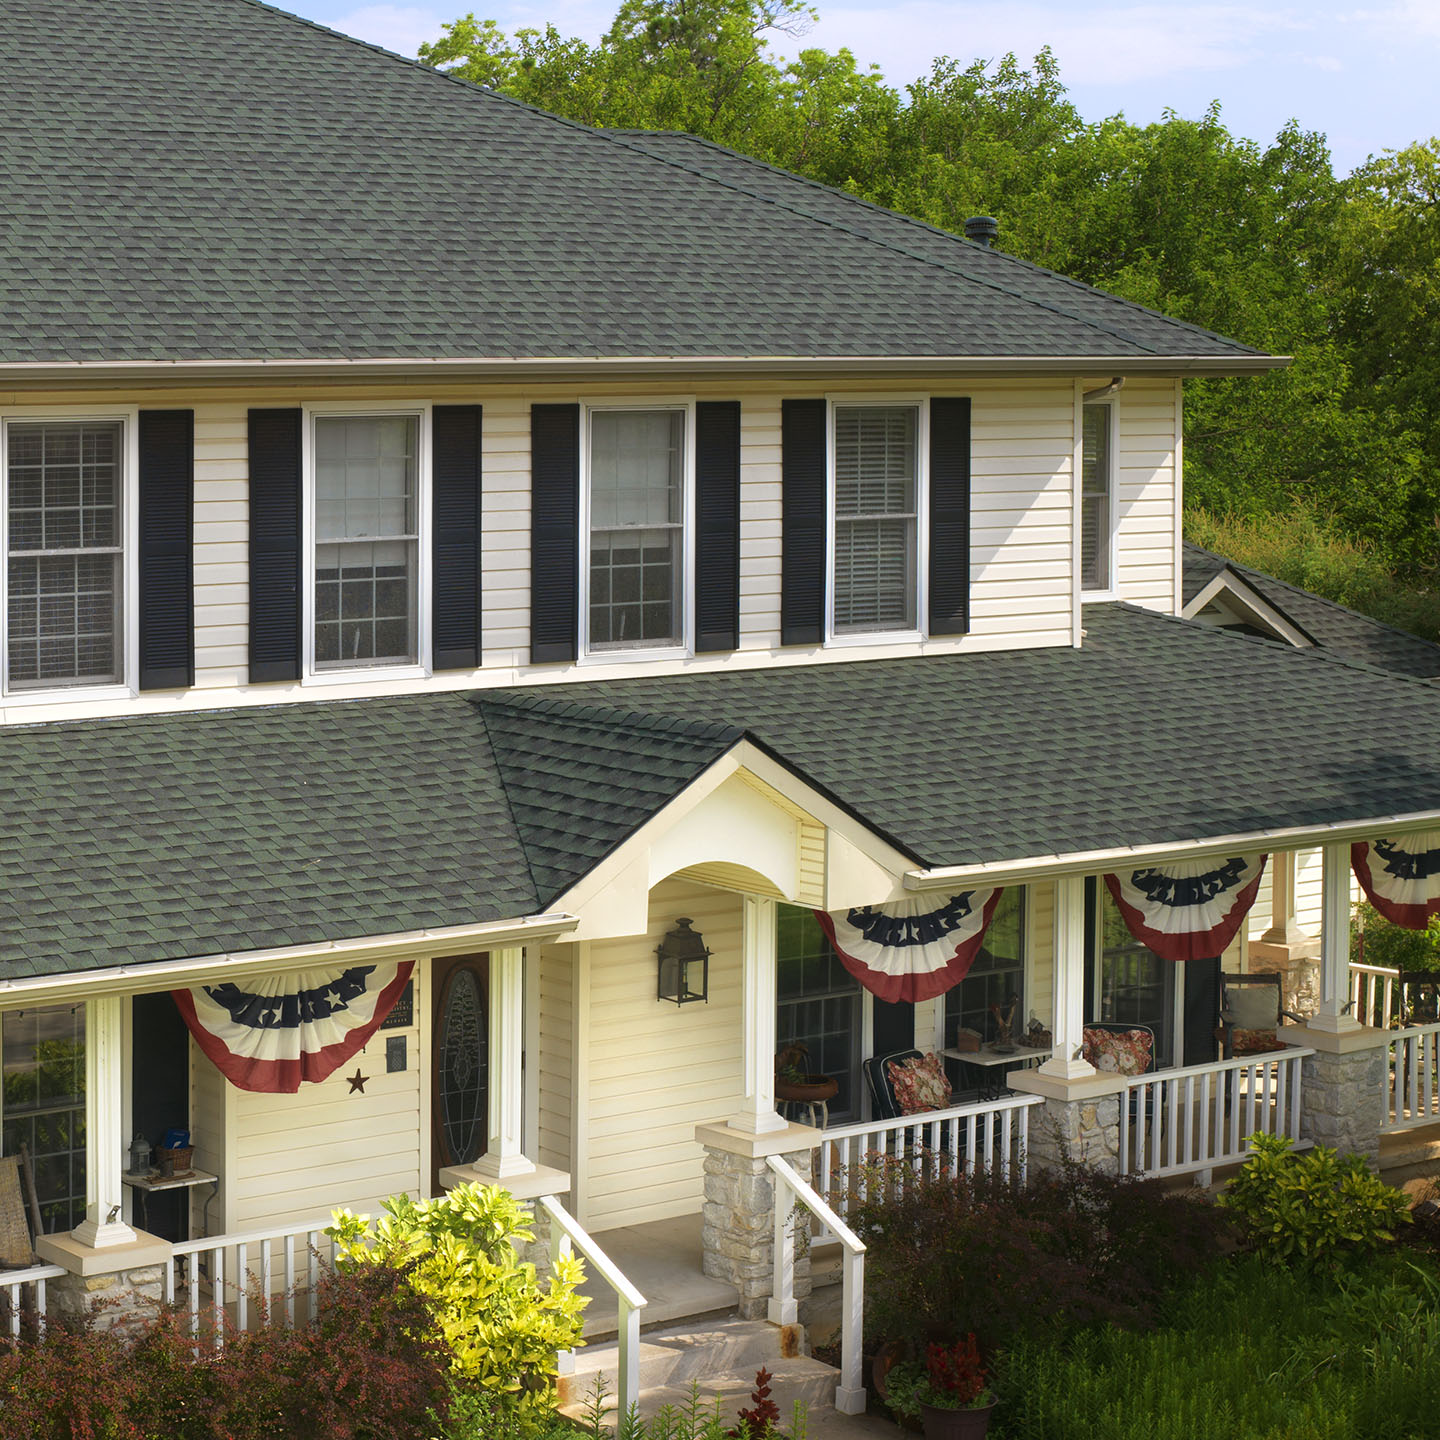 gaf hdz timberline shingle roofing roof American remodel Maryland